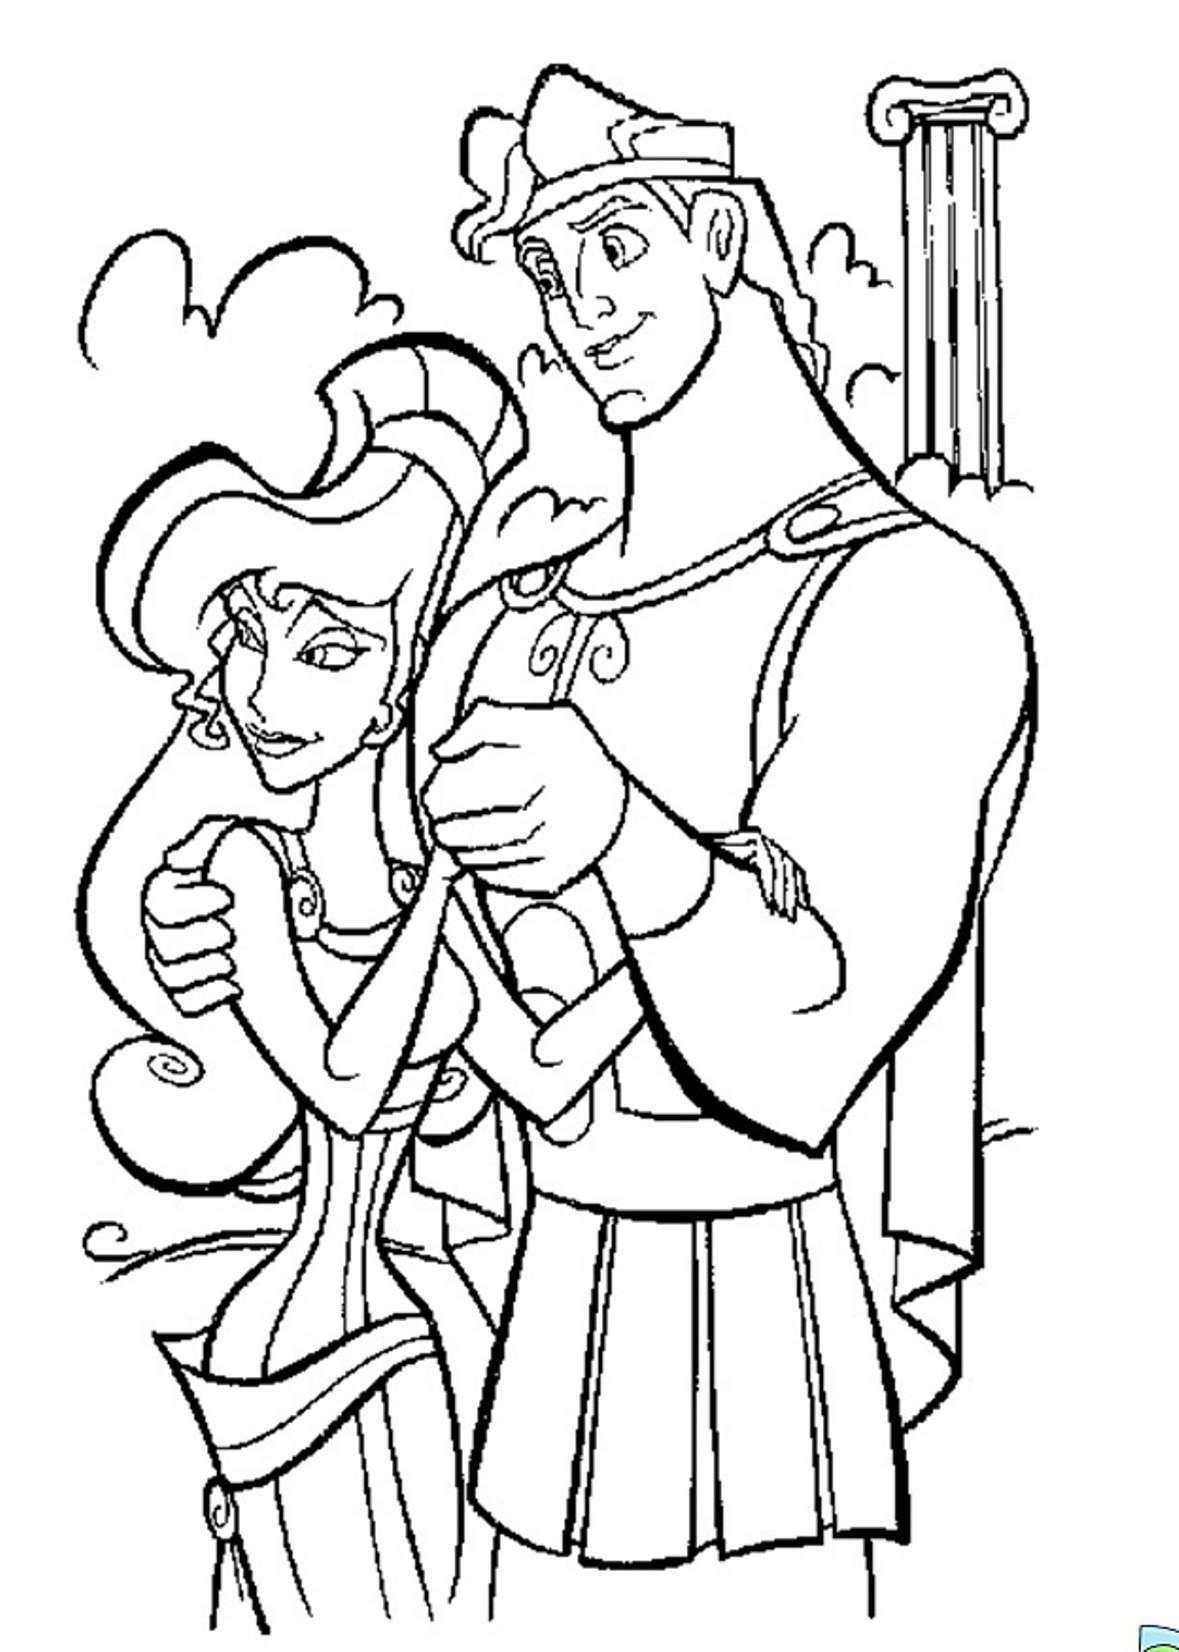 hercules coloring pages free printable hercules coloring pages for kids coloring hercules pages